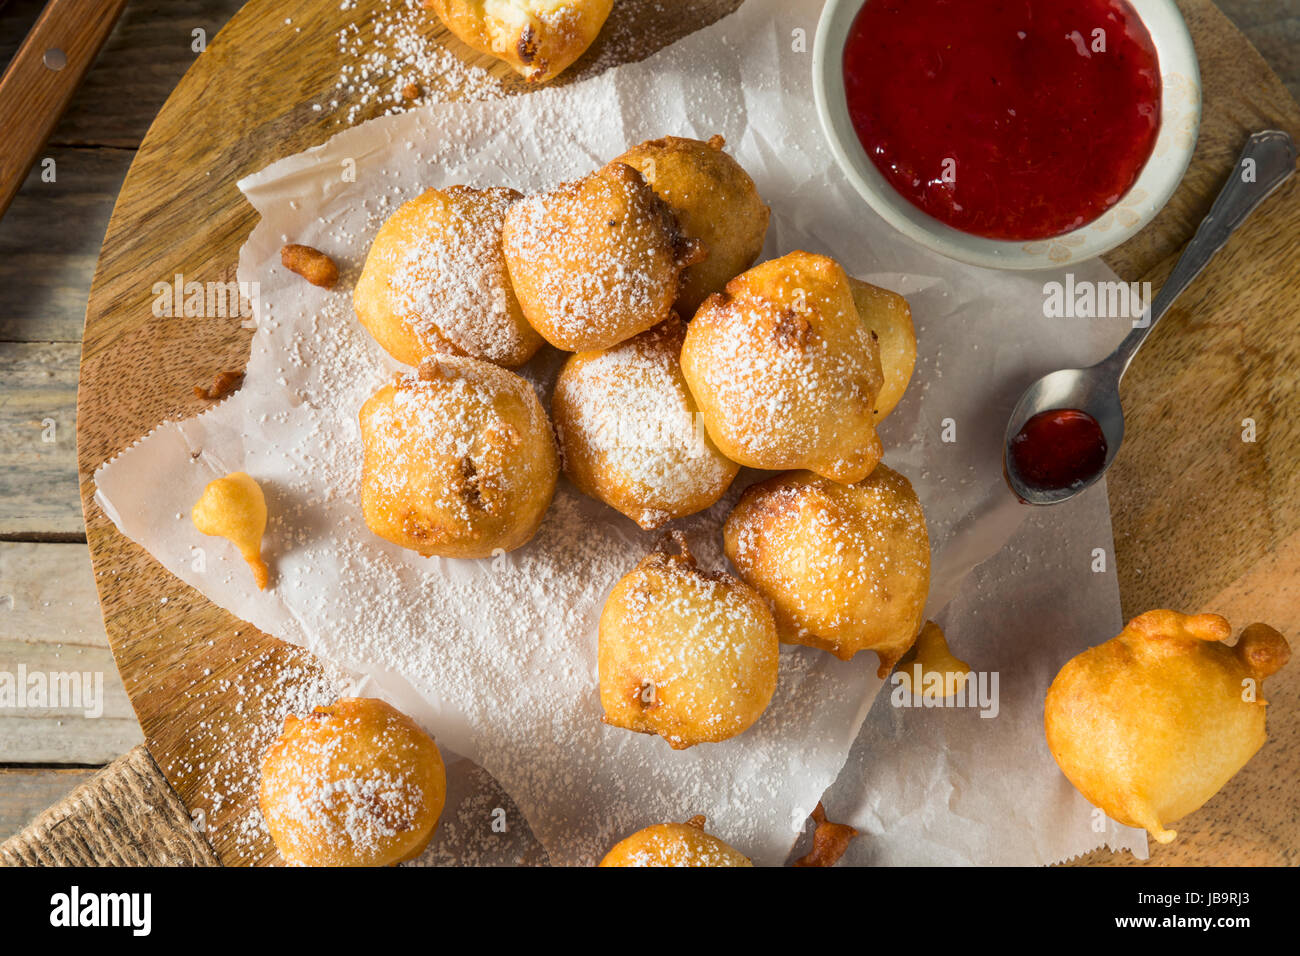 Homemade Deep Fried Cheesecake Bites with Powdered Sugar - Stock Image